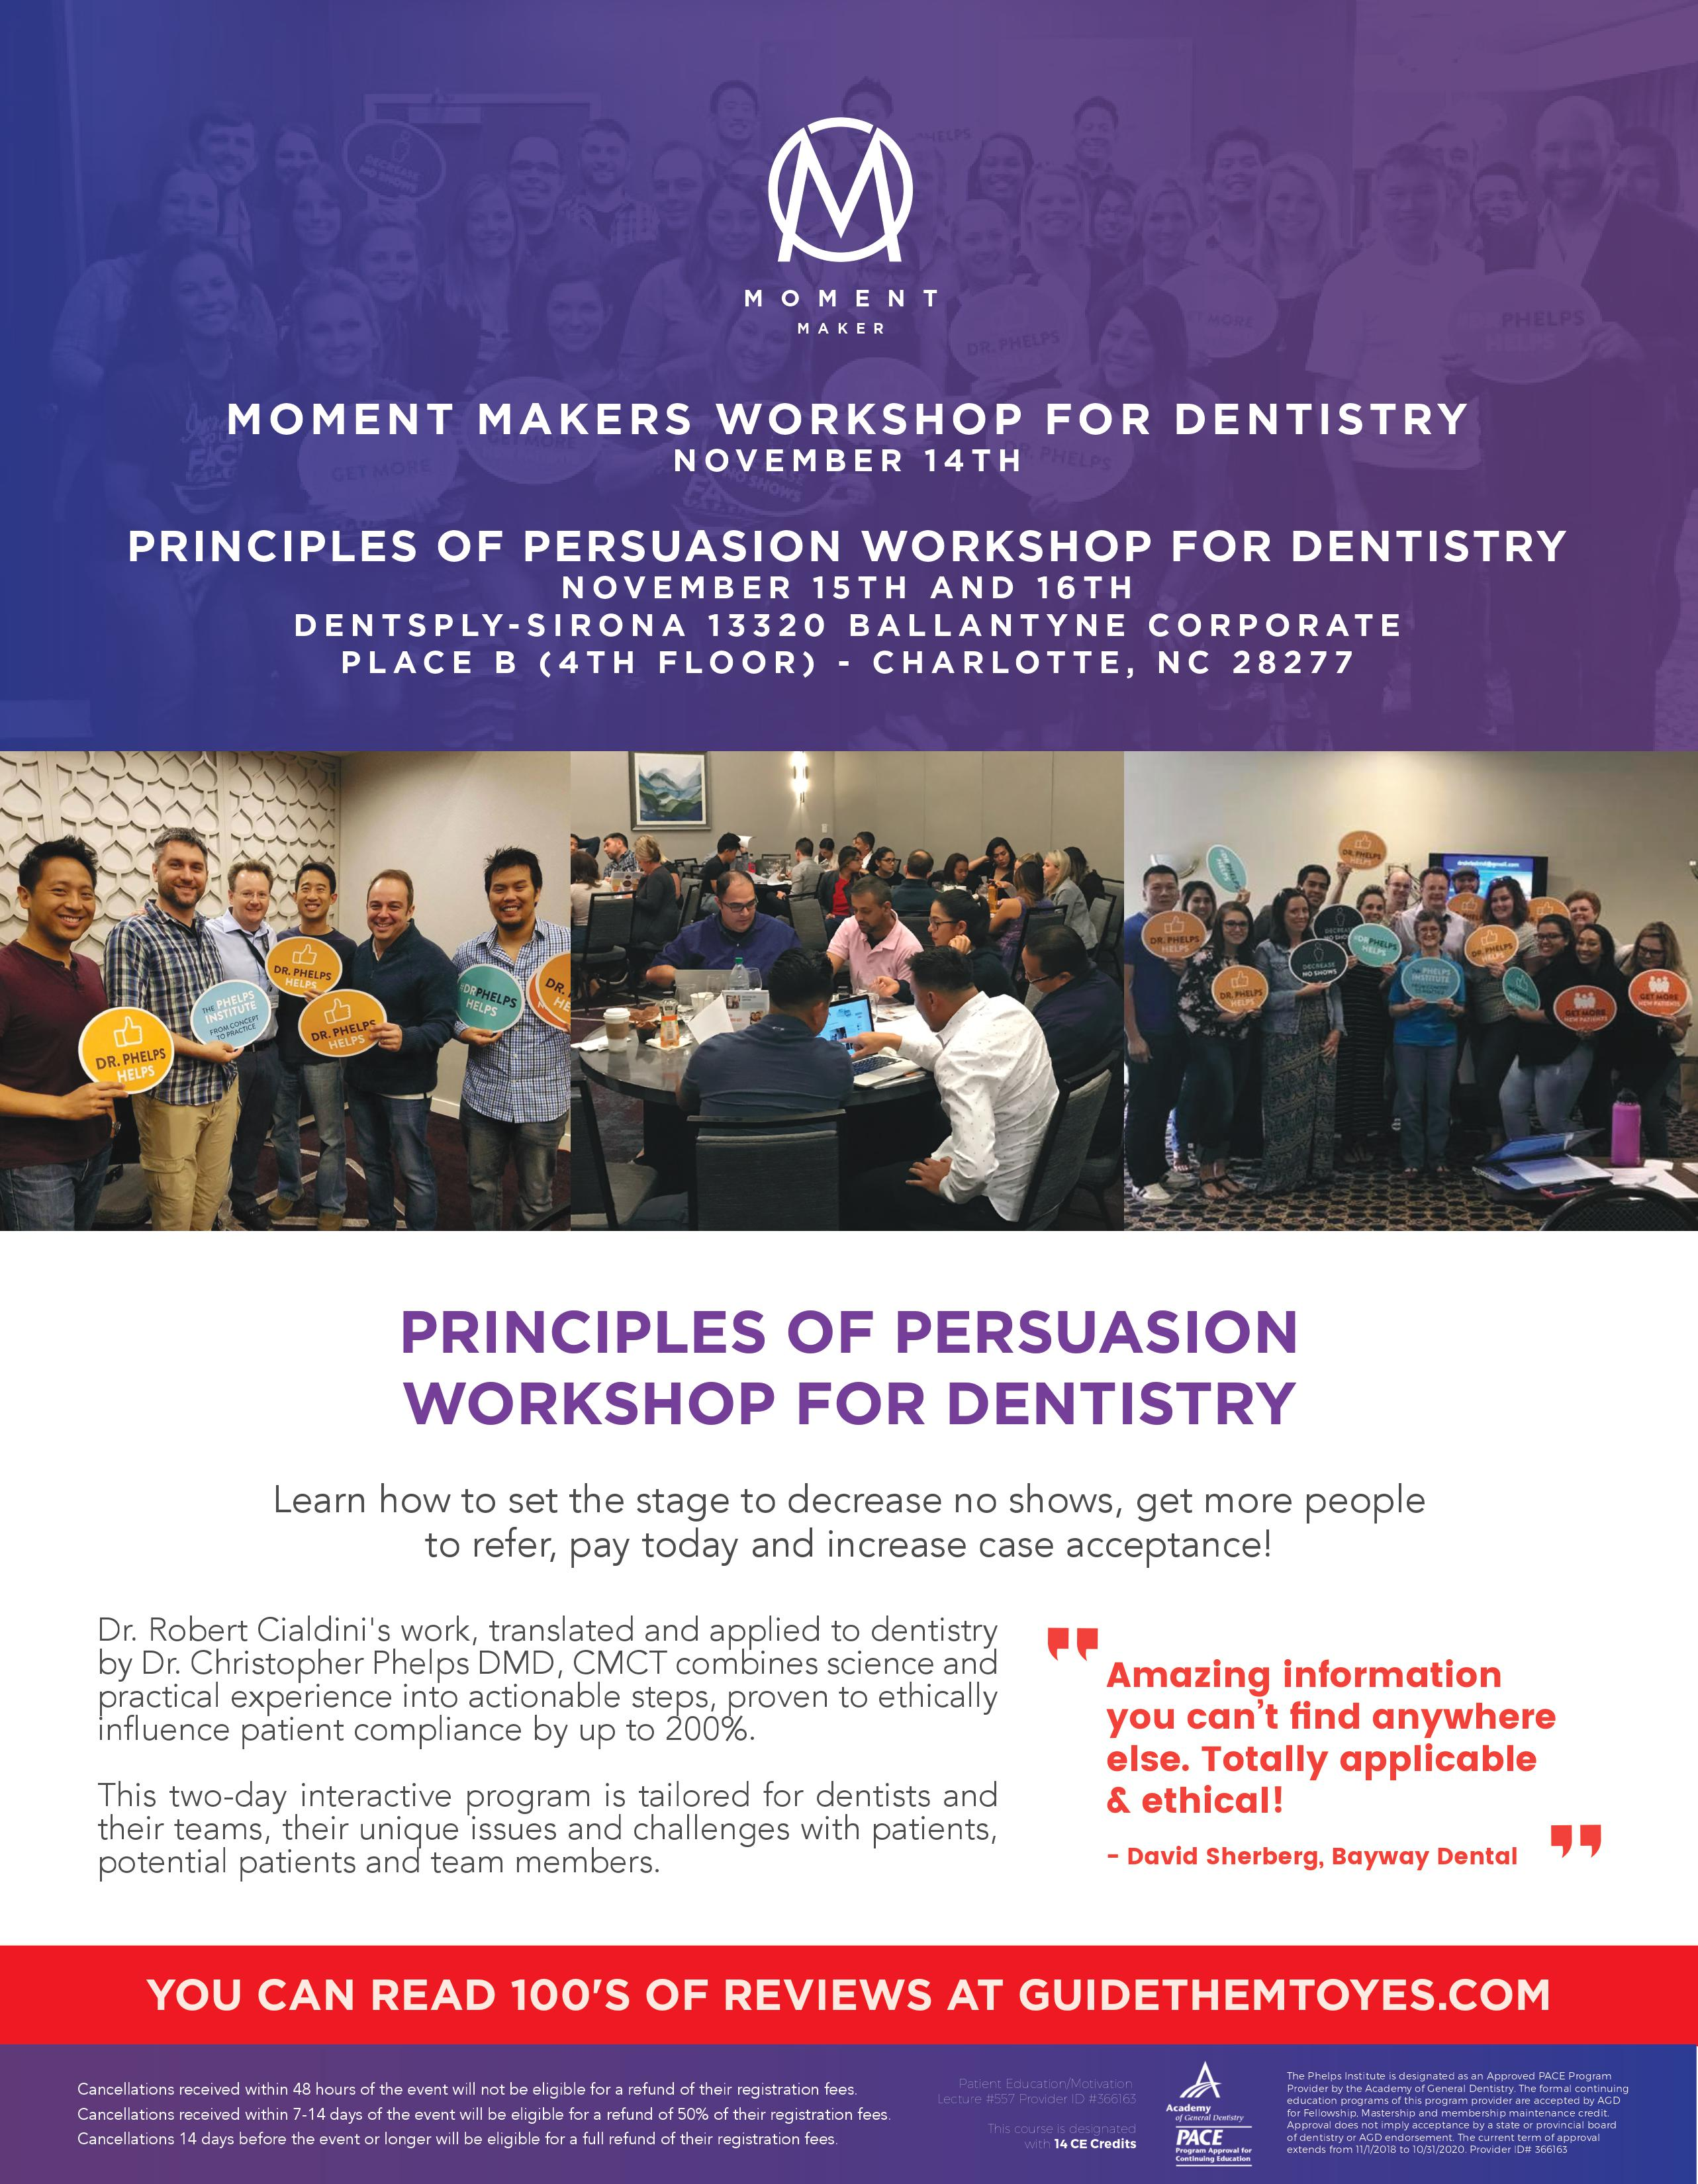 THE PRINCIPLES OF PERSUASION FOR DENTISTRY AND MOMENT MAKERS WORKSHOP | Buy  Tickets in Charlotte | Ticketbud